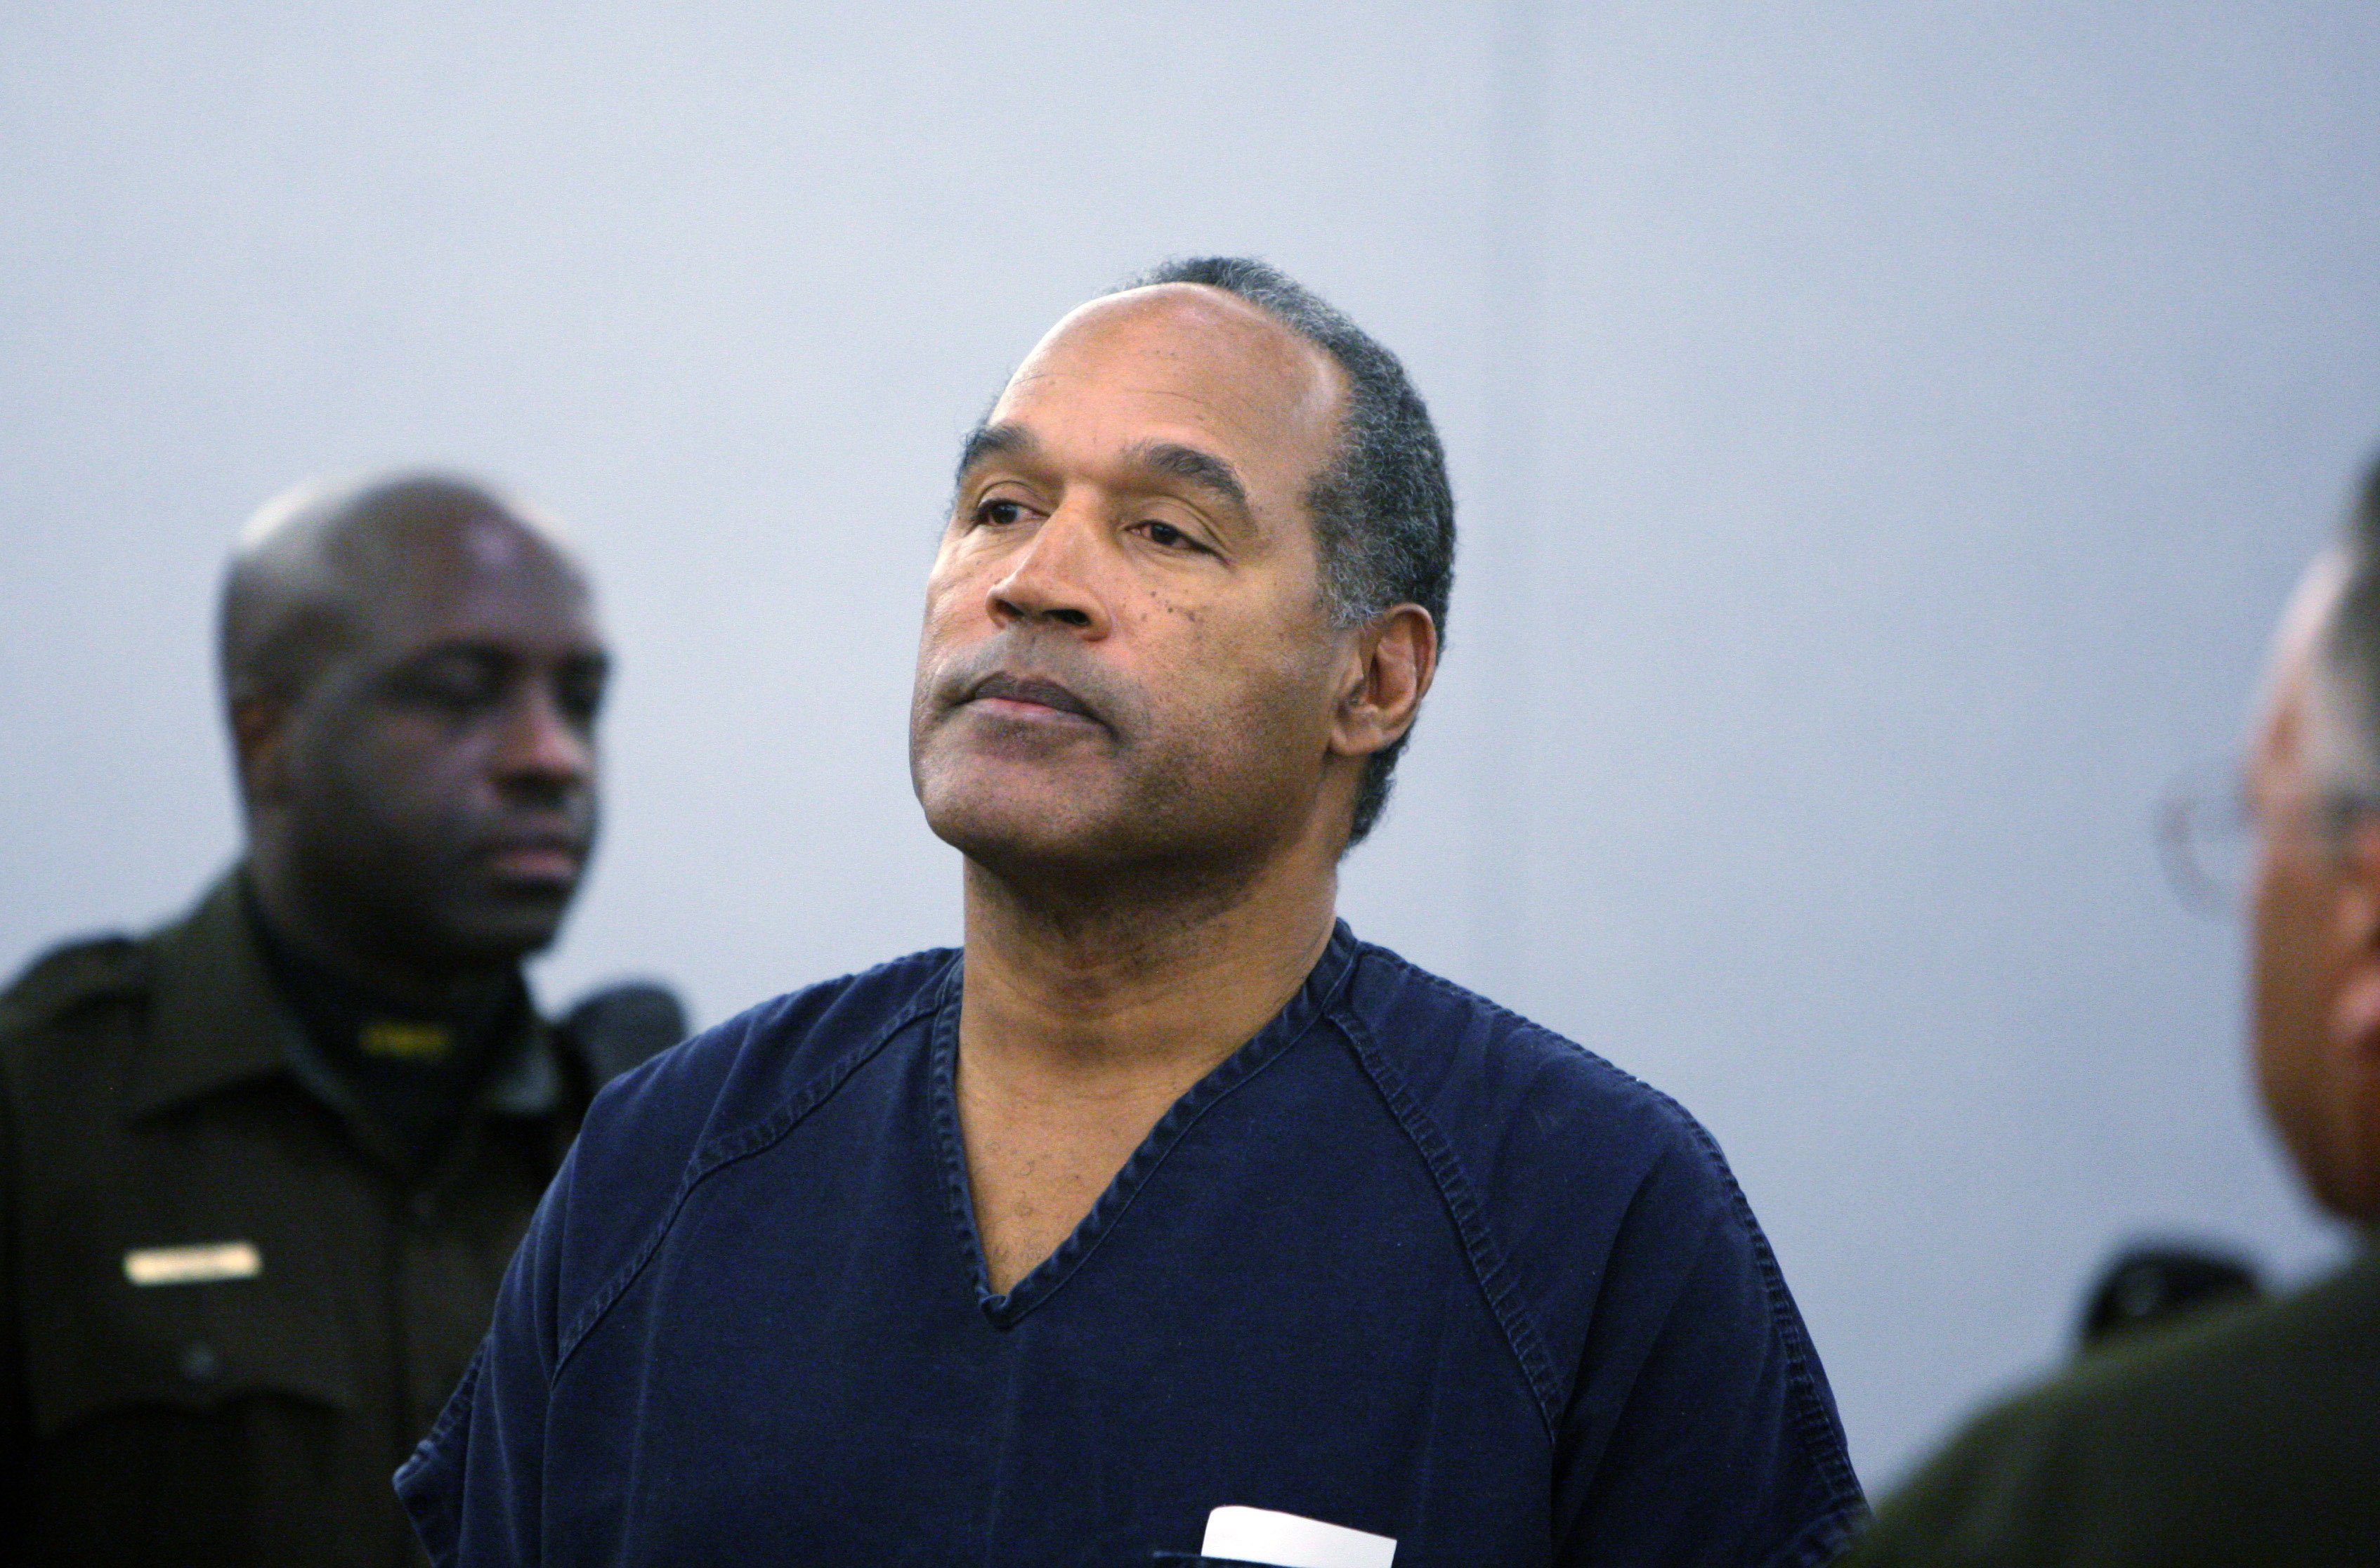 O.J. Simpson at the Clark County Regional Justice Center in Las Vegas, Nevada on Dec. 5, 2008. | Photo: Getty Images